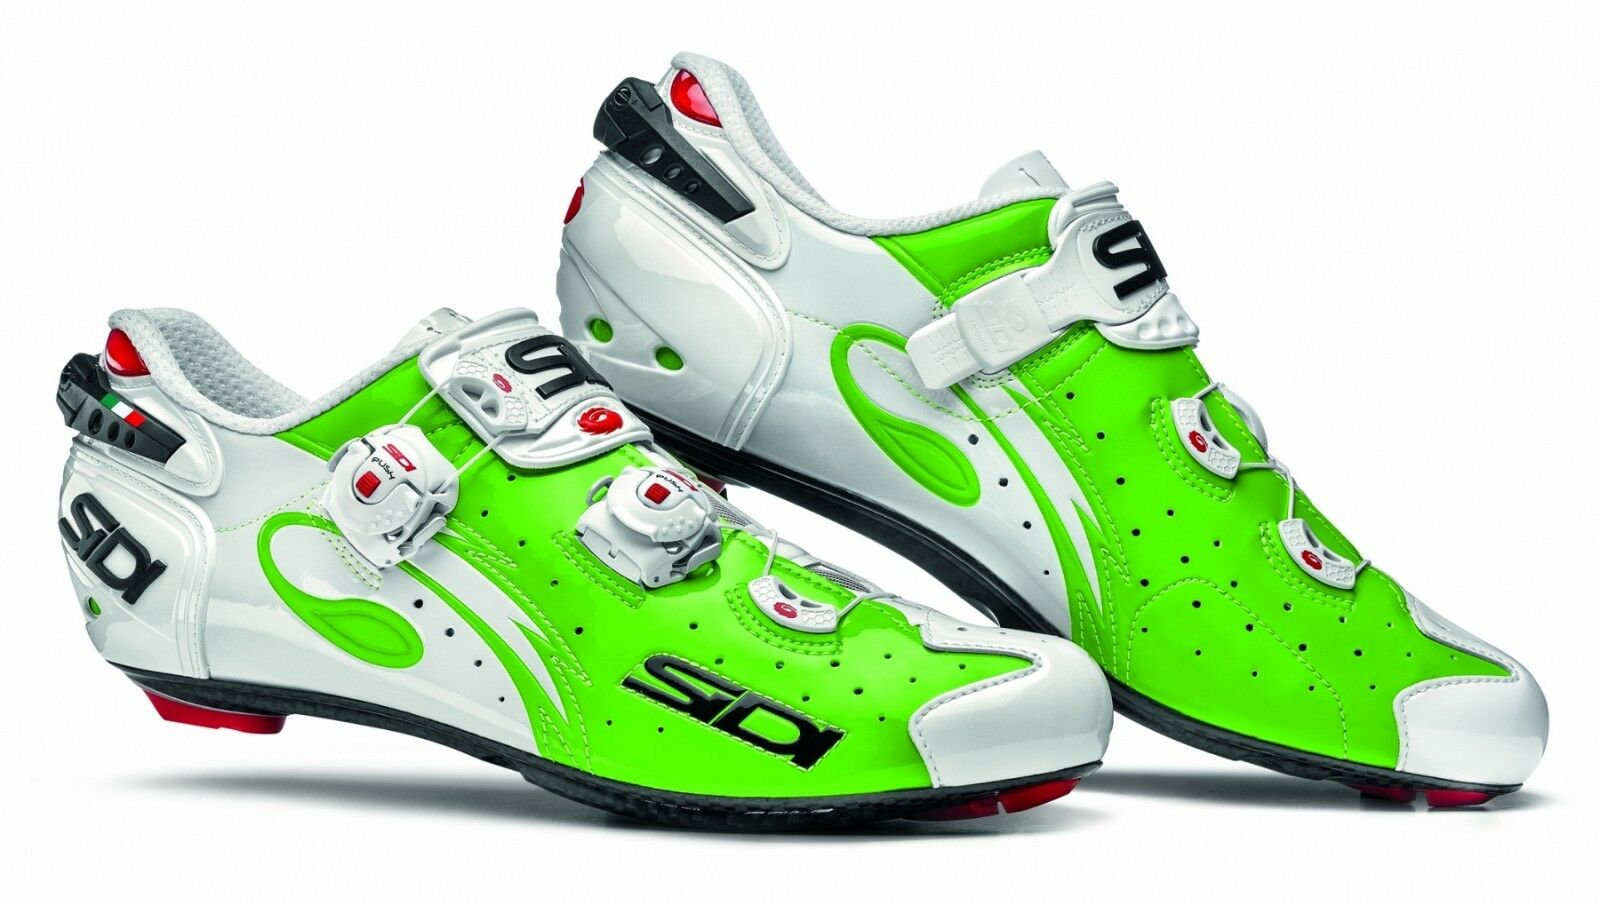 SIDI  Wire Carbon Road Cycling shoes - Green Fluo White  all in high quality and low price